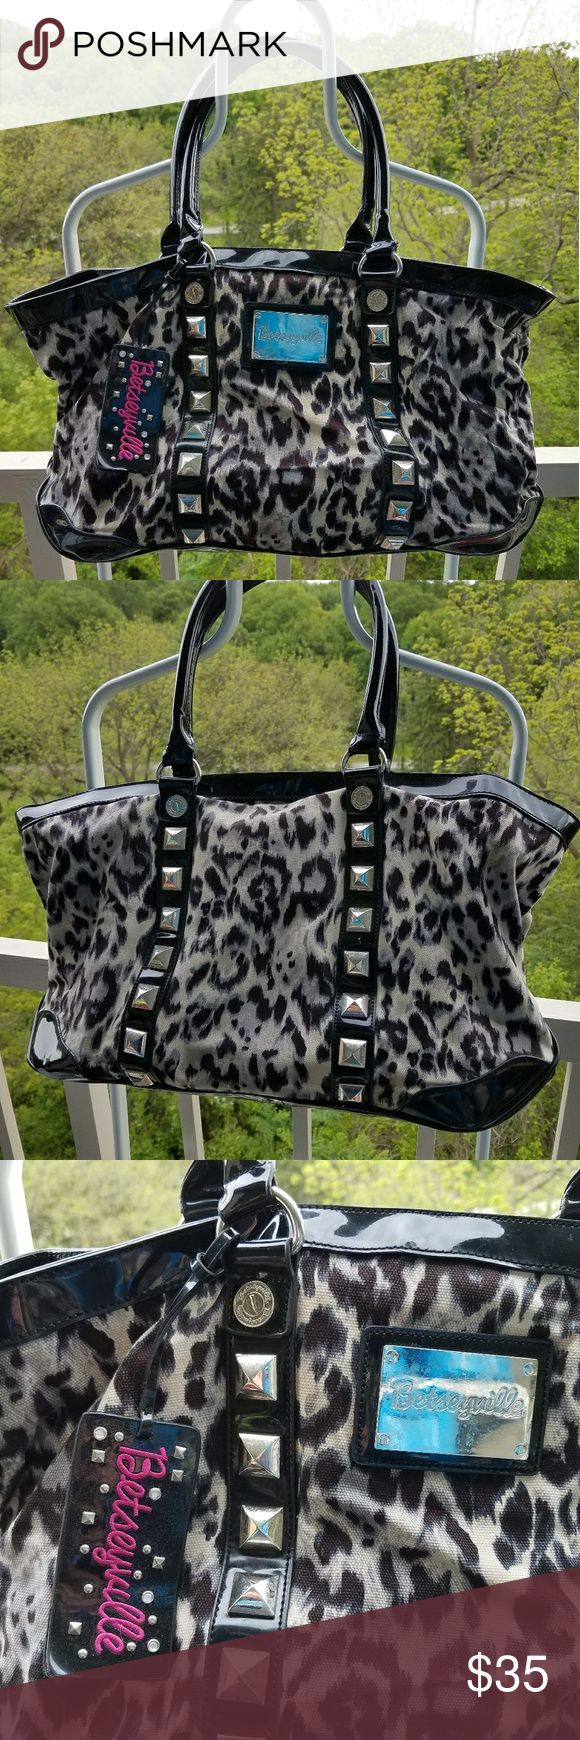 Betseyville Large Animal Print Shoulder Bsg Betseyville Large Animal Print Shoulder bag eith metal studs.  Great statement purse. Small amount of fraying on one handle. Great bag for spring summer. Betseyville Bags Shoulder Bags